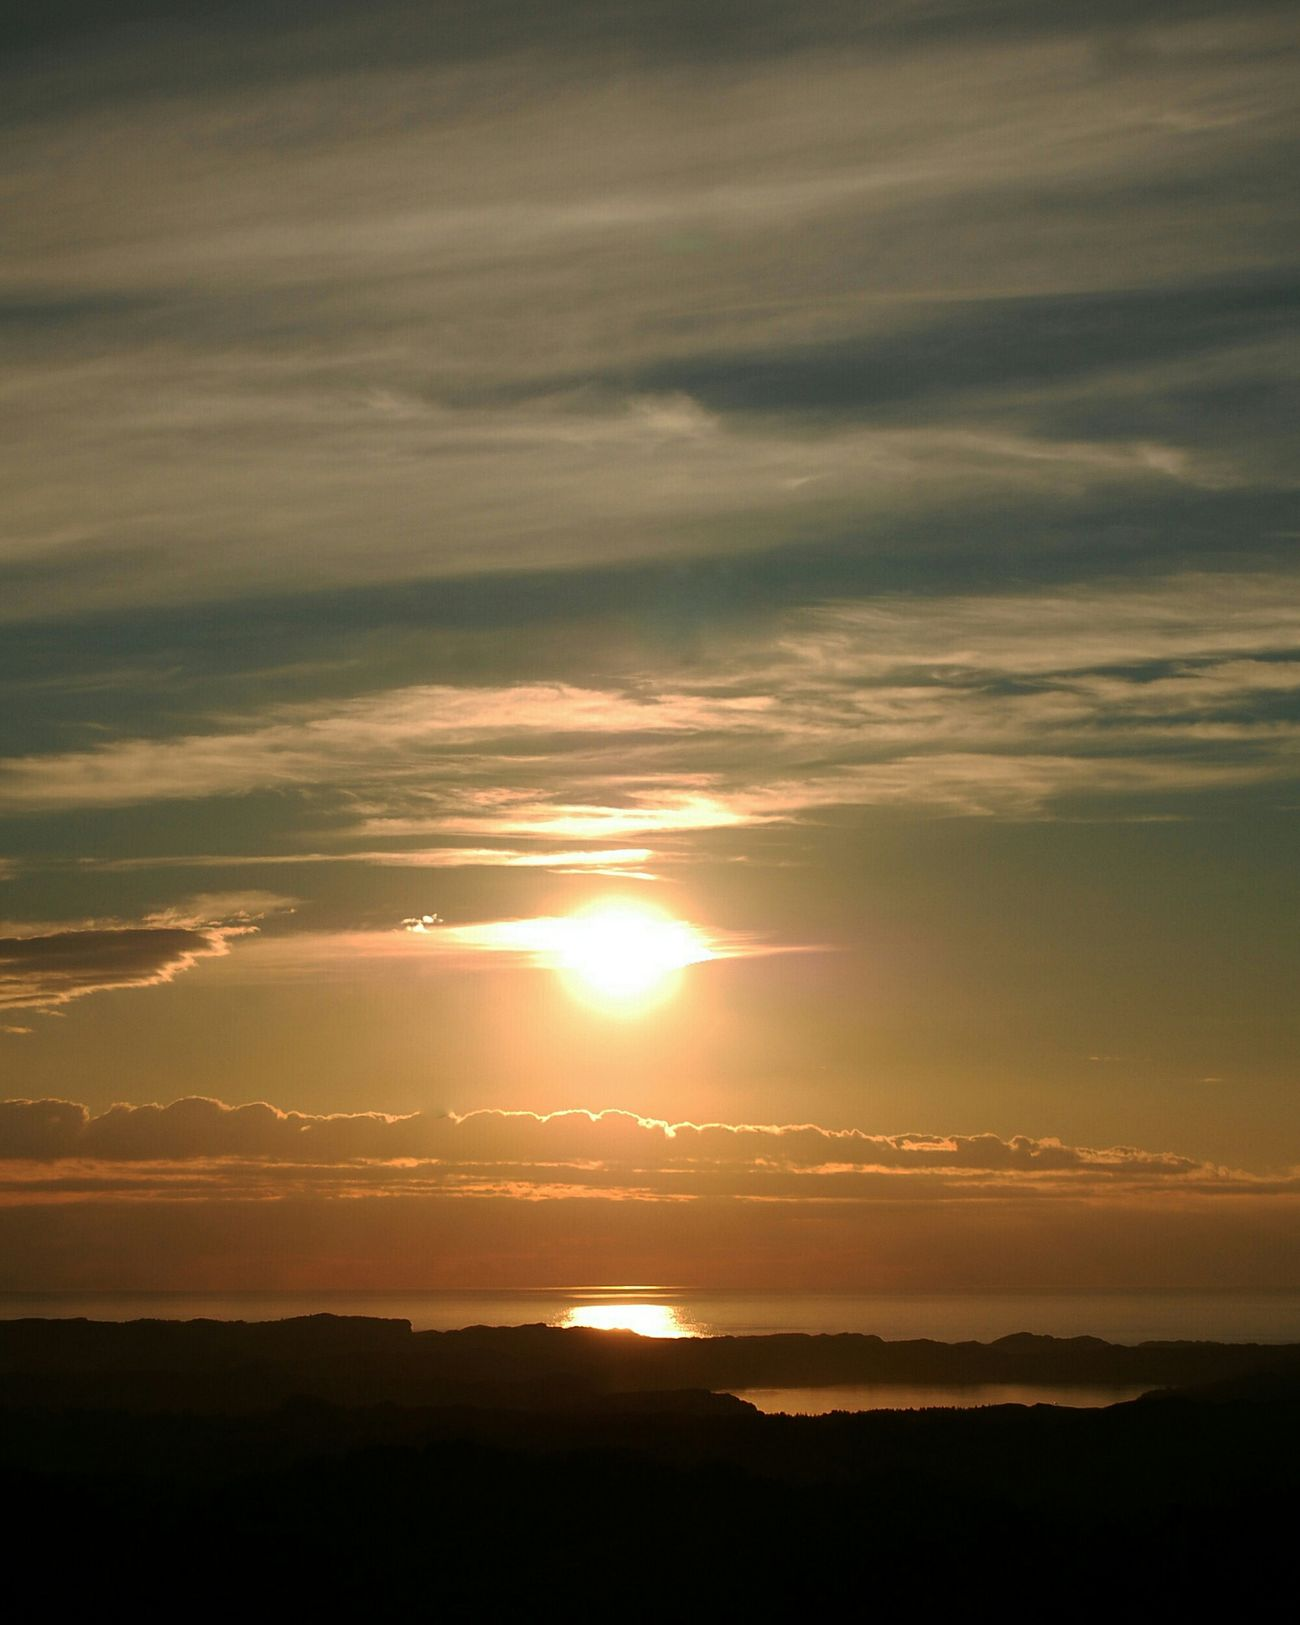 Sunset Nature Beauty In Nature Sky Dramatic Sky No People Outdoors Cloud - Sky Norway Norge Sotra Pink Sky Perfect Sky Fjell Festning Hiking Ut På Tur Ut På Tur Aldrig Sur Sol Sun Sea Sea And Sky